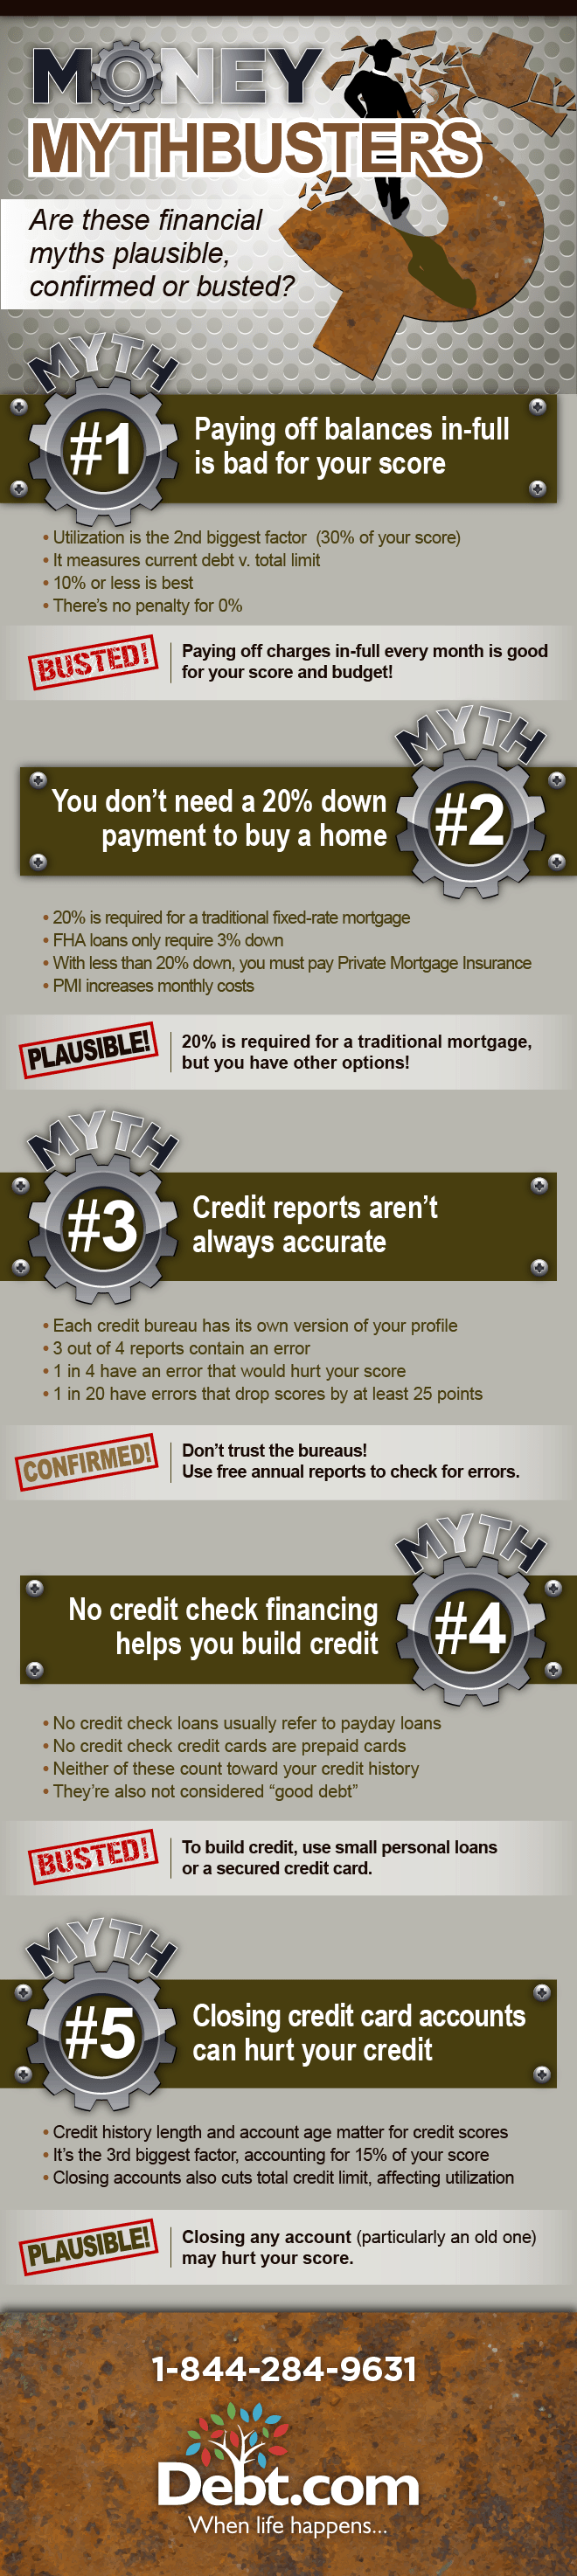 Debt.com's Money Mythbusters infographic looks at the top 5 financial myths